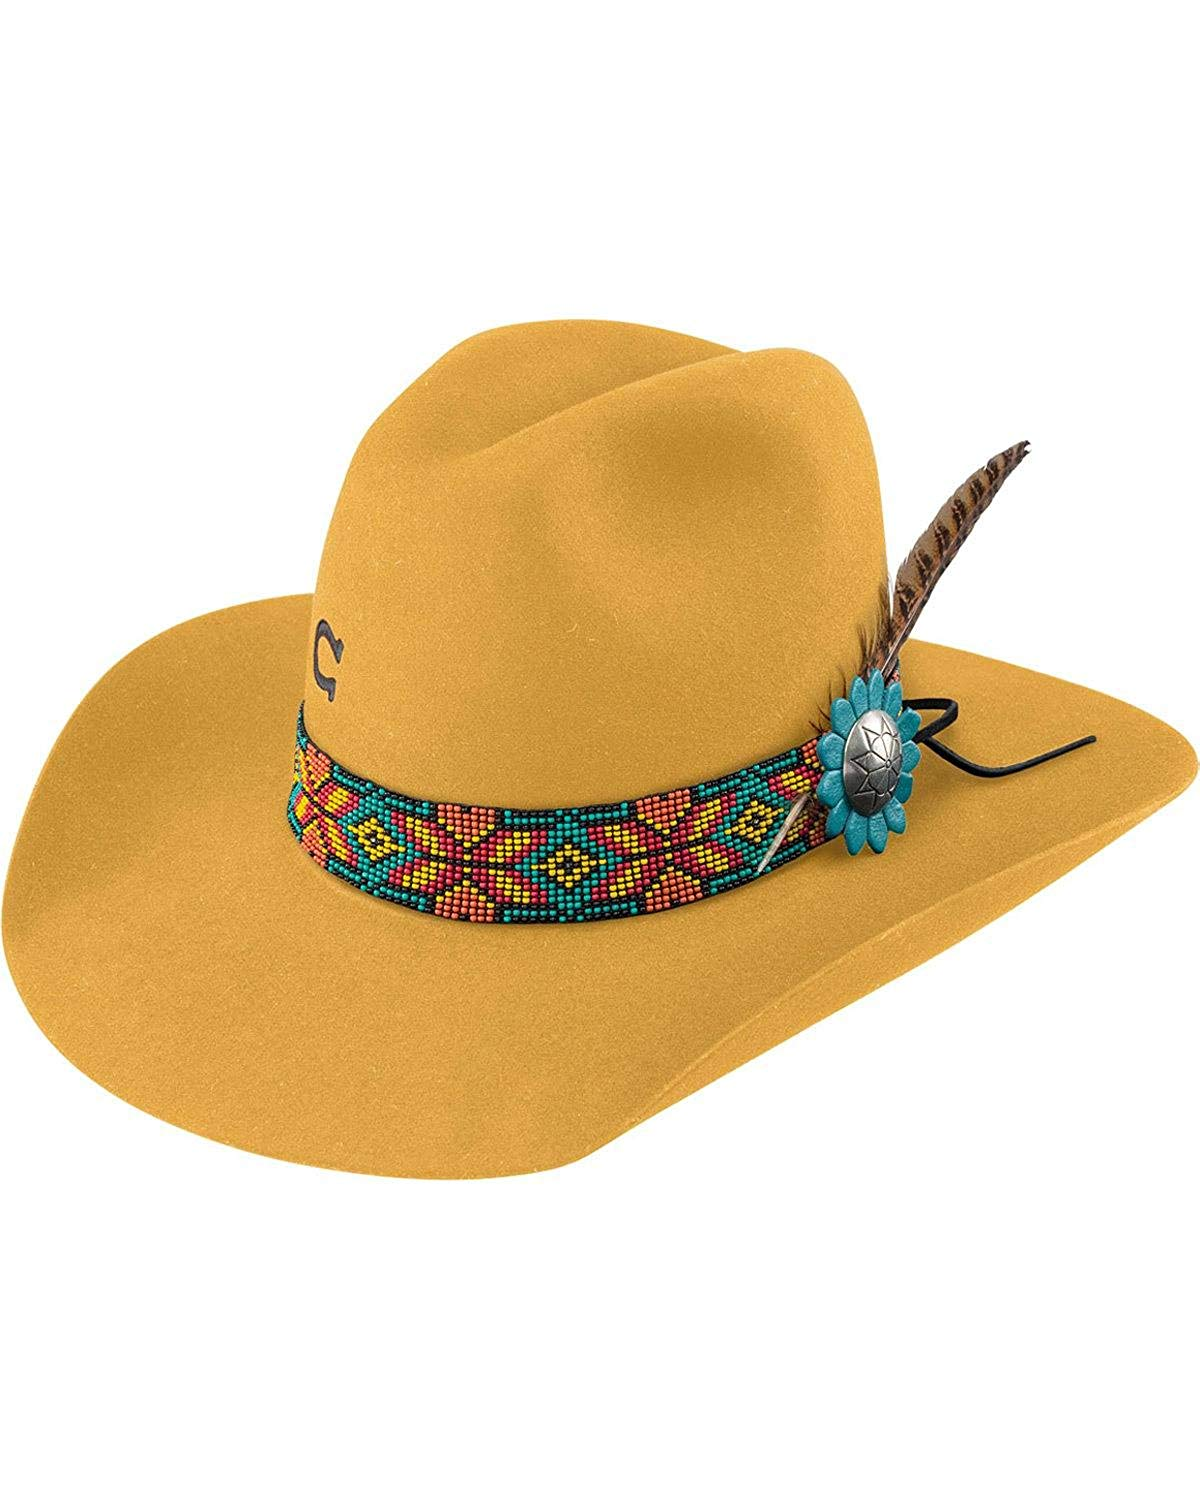 51dab959de910 Get Quotations · Charlie 1 Horse Women s Yellow Gold Digger Hat -  Cwgdgr-2134Yl